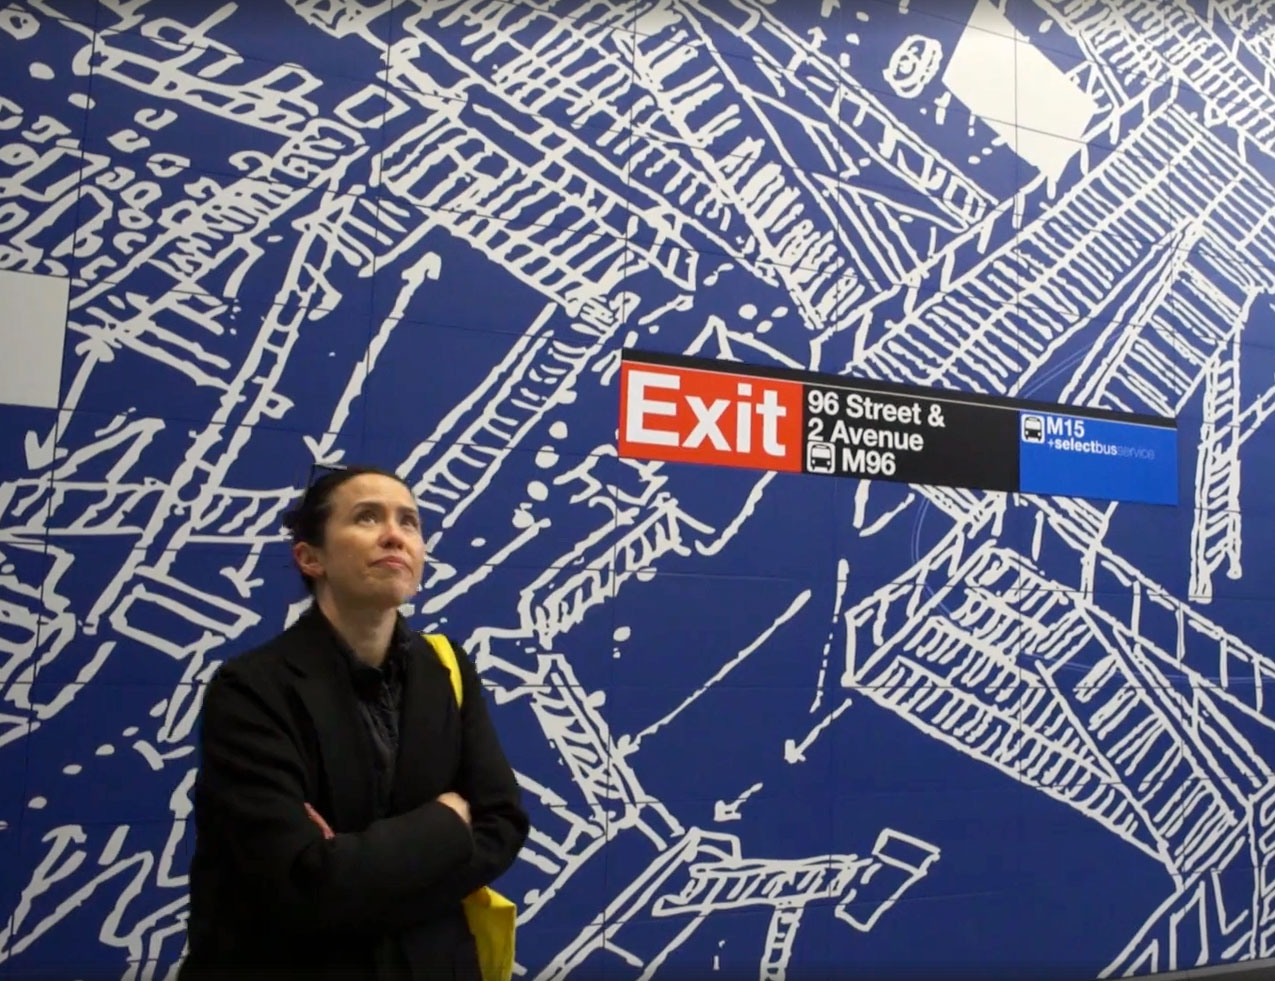 Sarah Sze explains her 2nd Avenue subway art